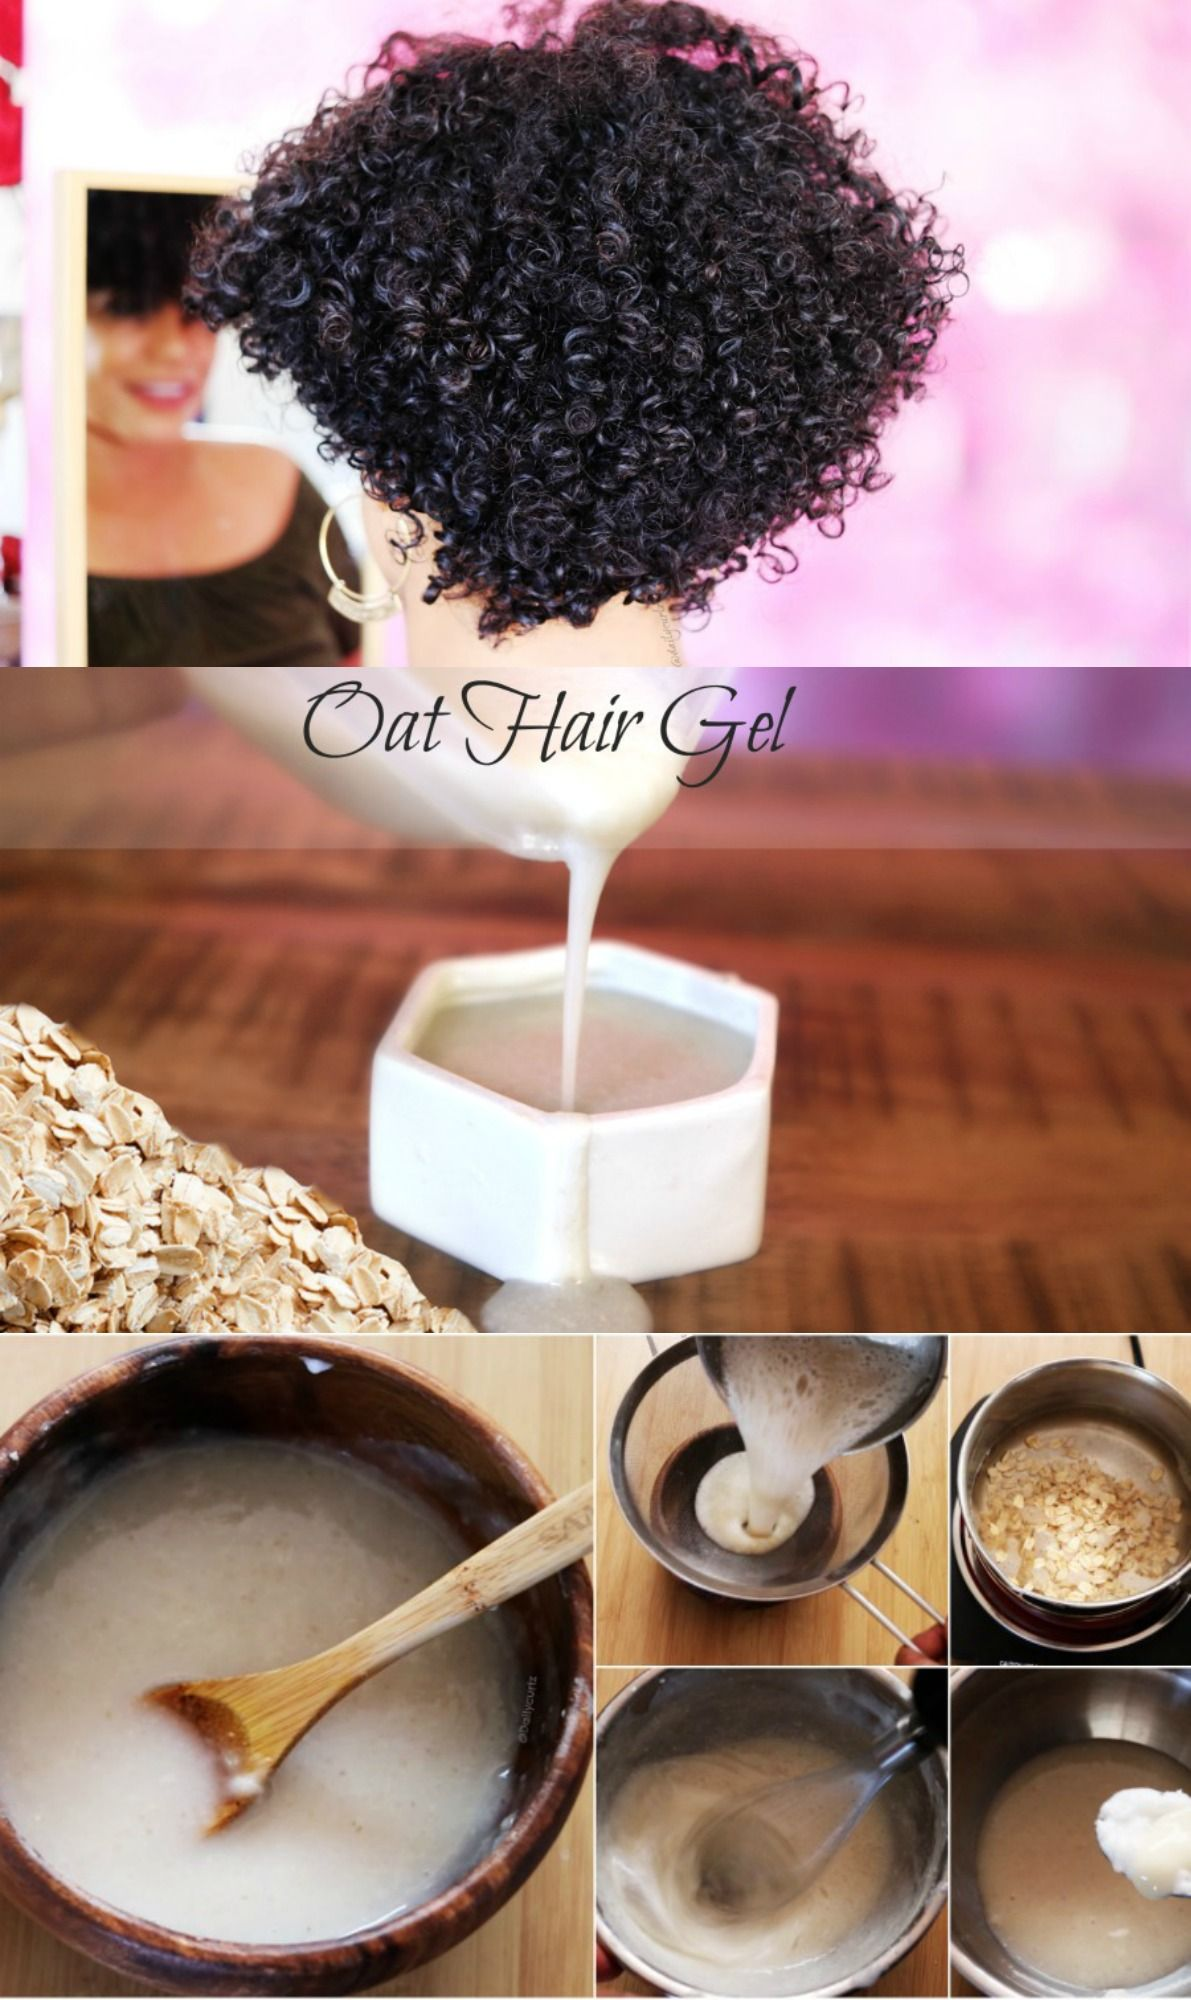 28+ Curling natural hair with gel ideas in 2021